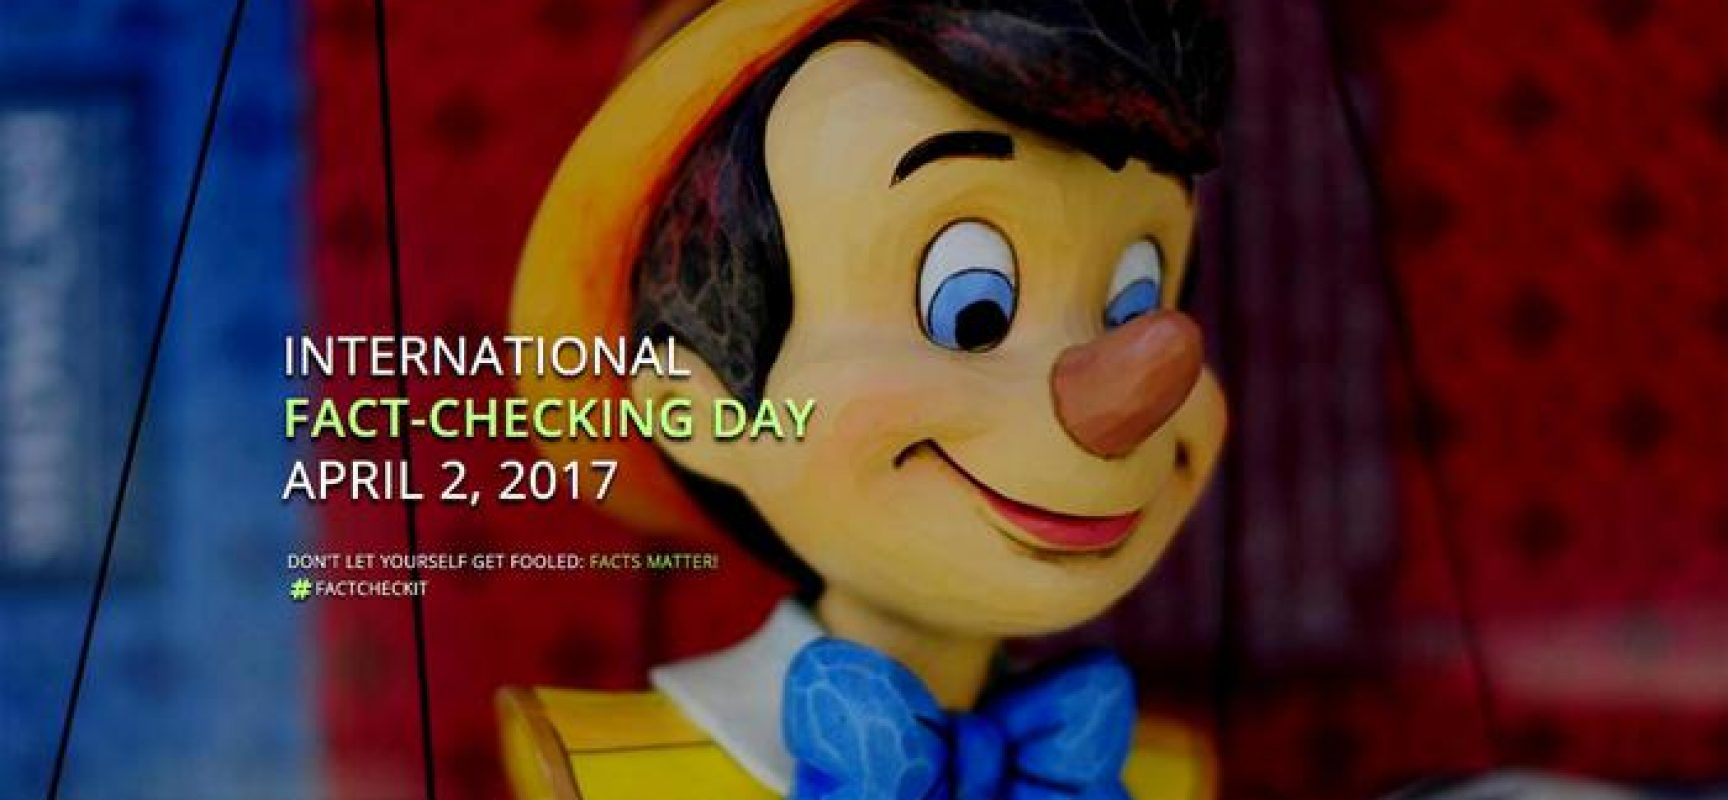 2 aprile, Fact-Checking Day